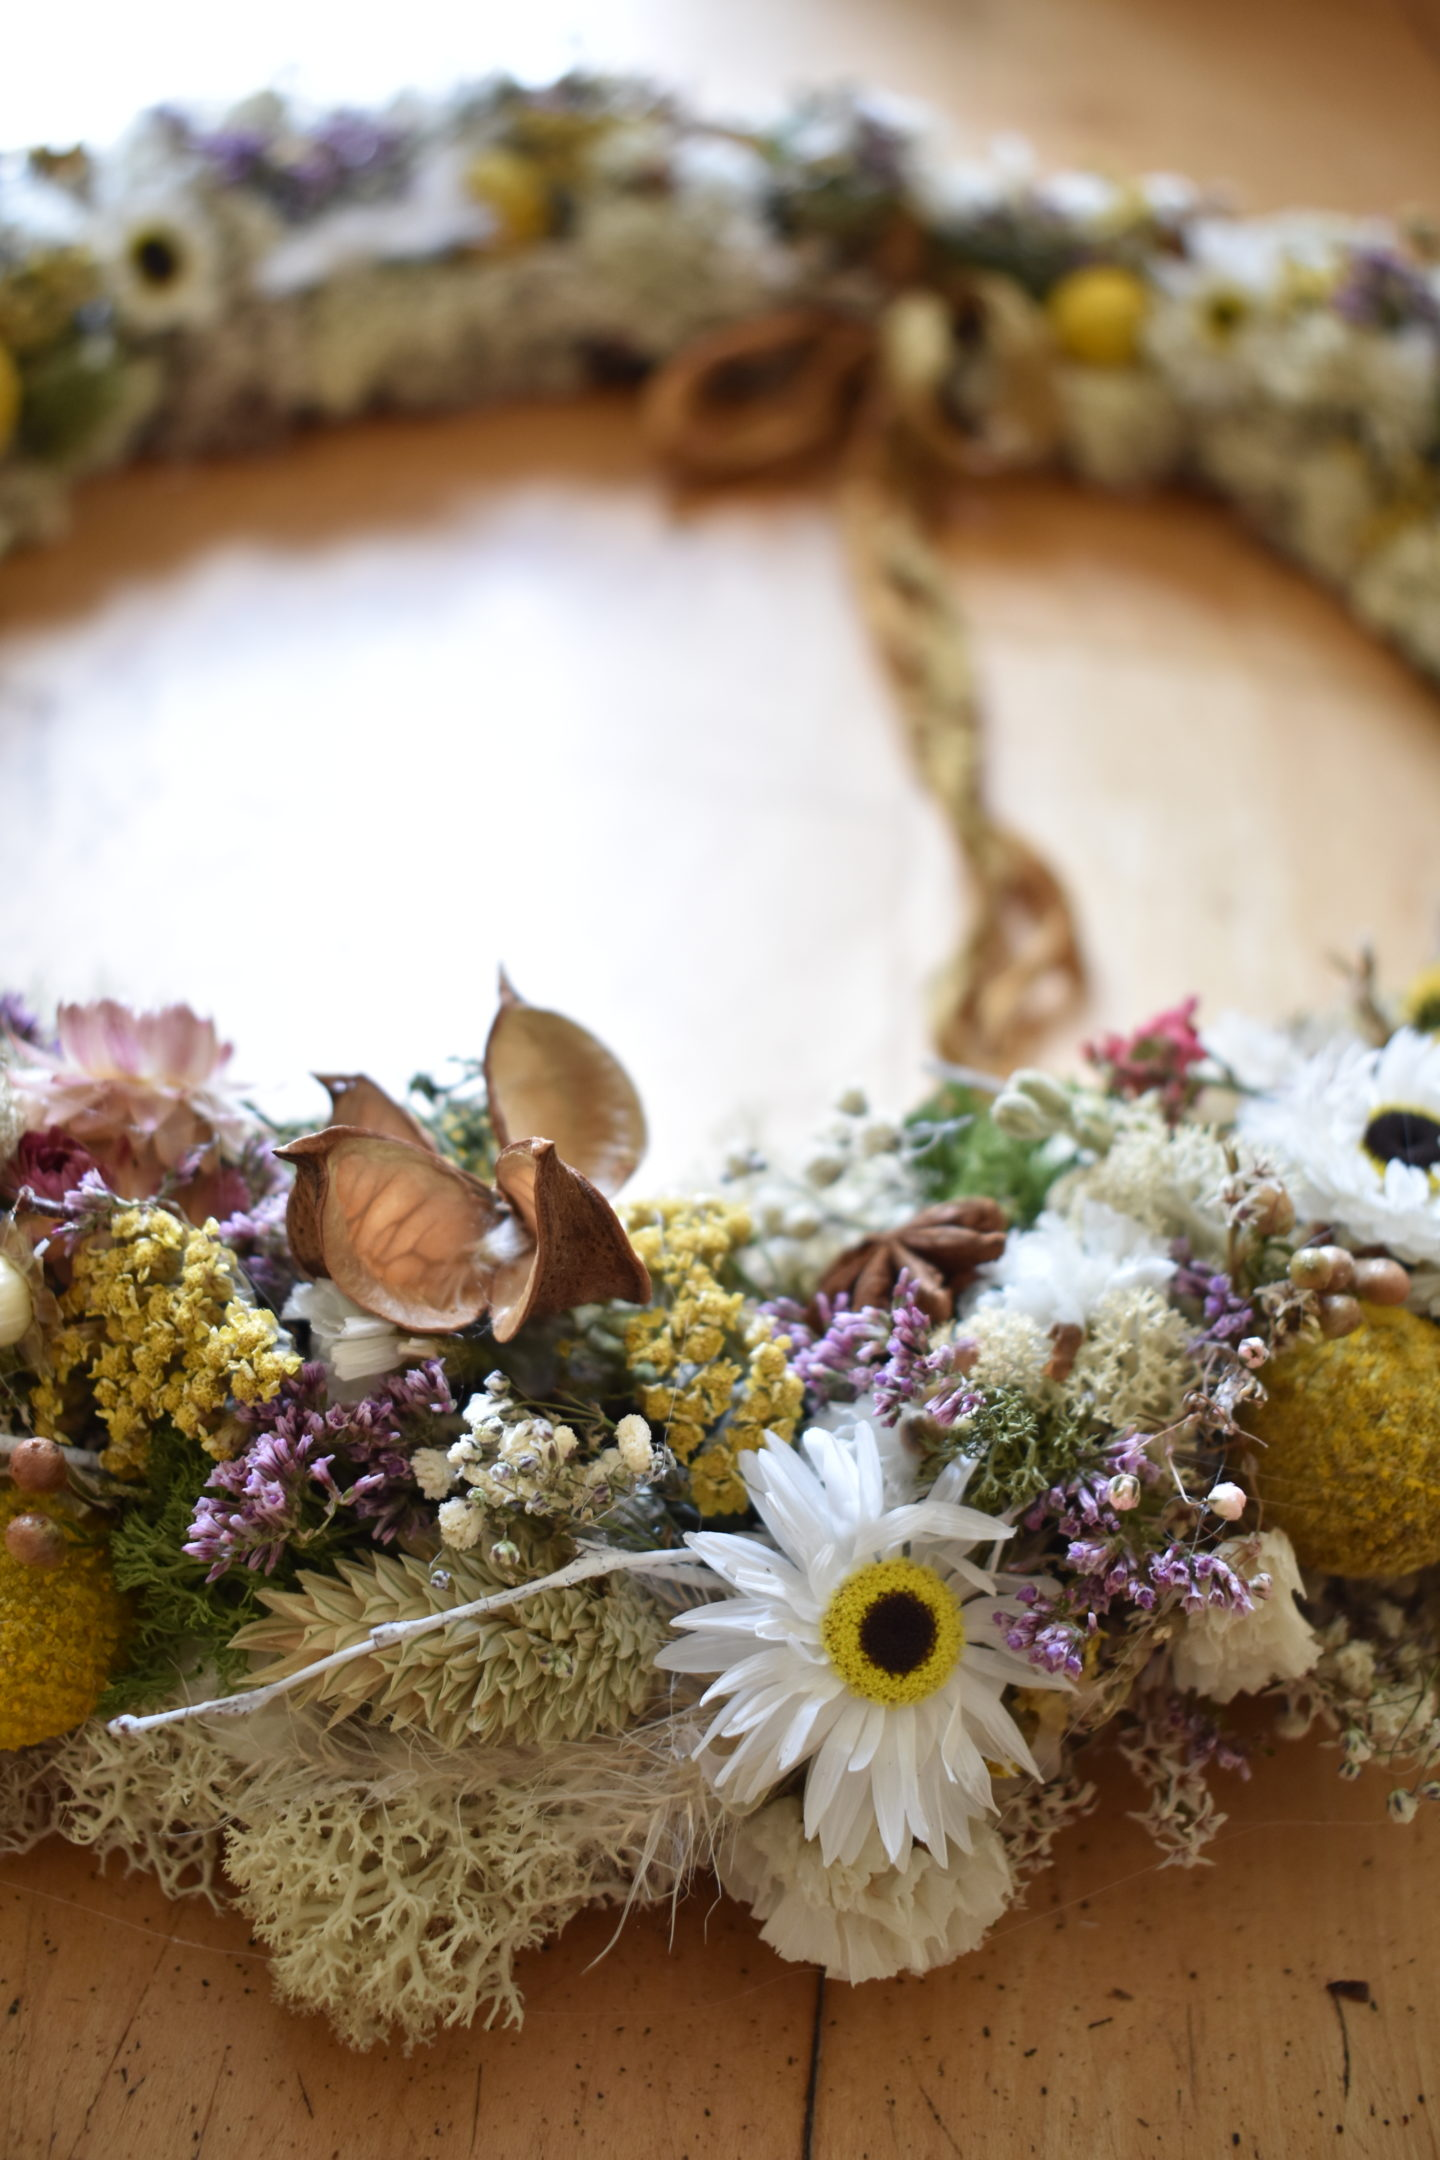 How To Dry Your Wedding Flowers To Keep Them Forever